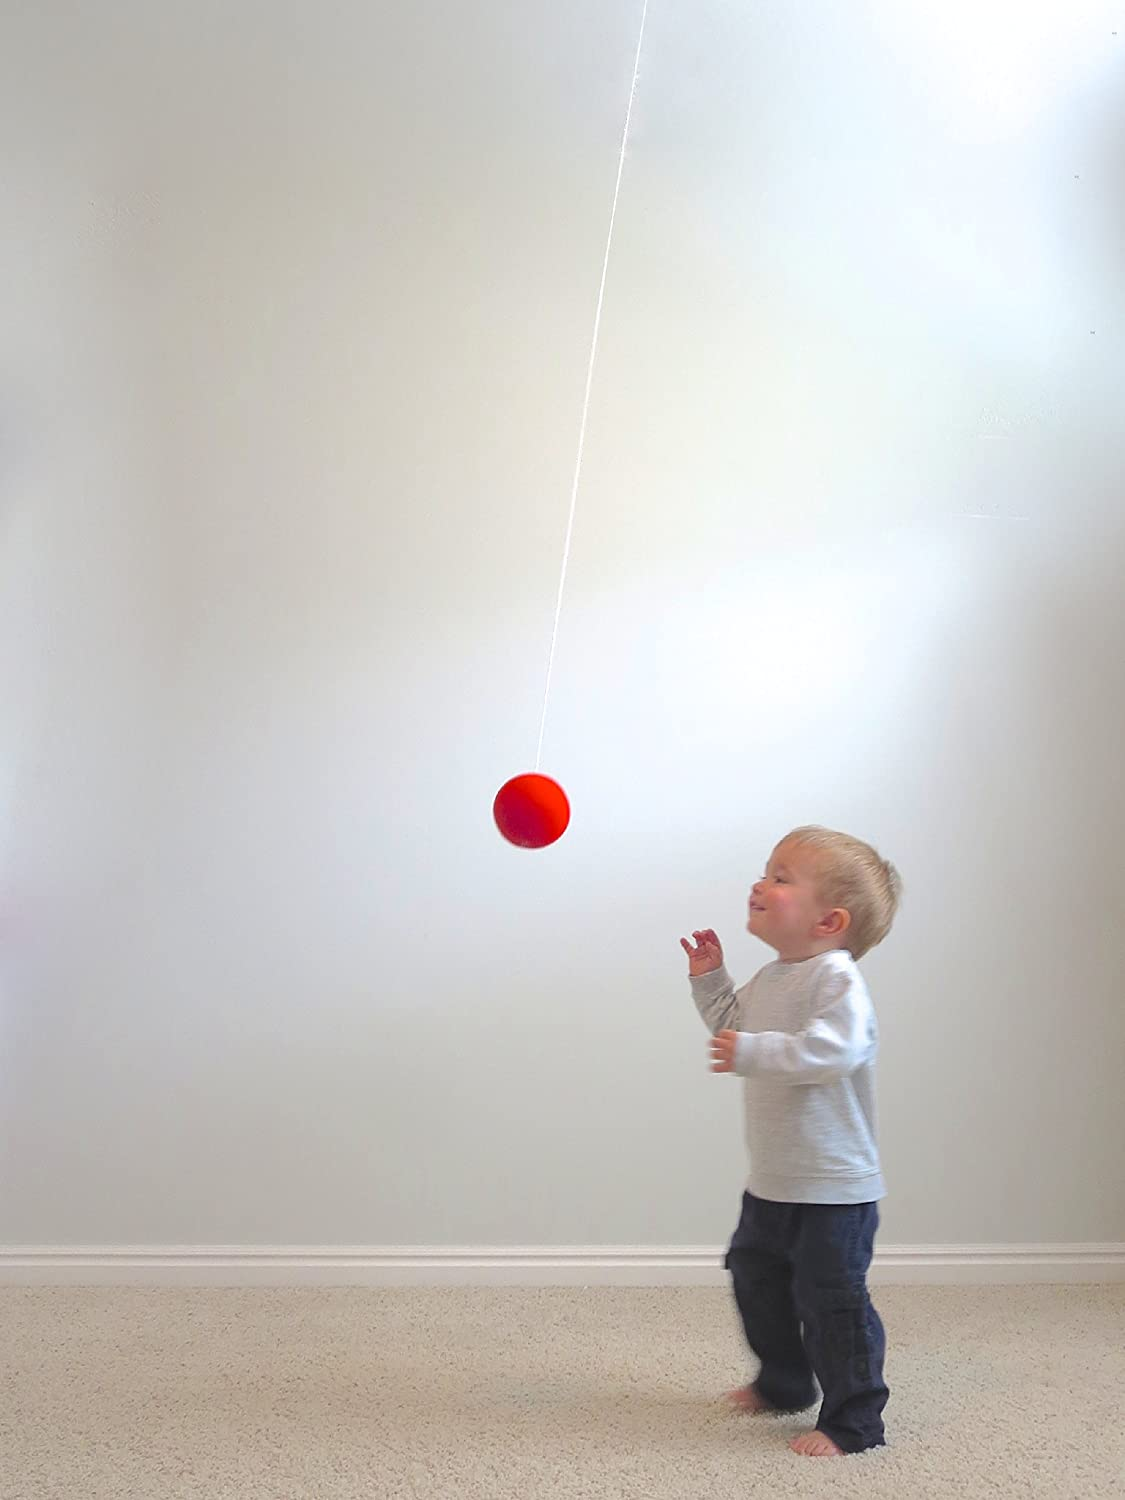 Nightzone light up rebound ball - Amazon Com Flyball A Hanging 4 Foam Ball On An Elastic String Musical Instruments